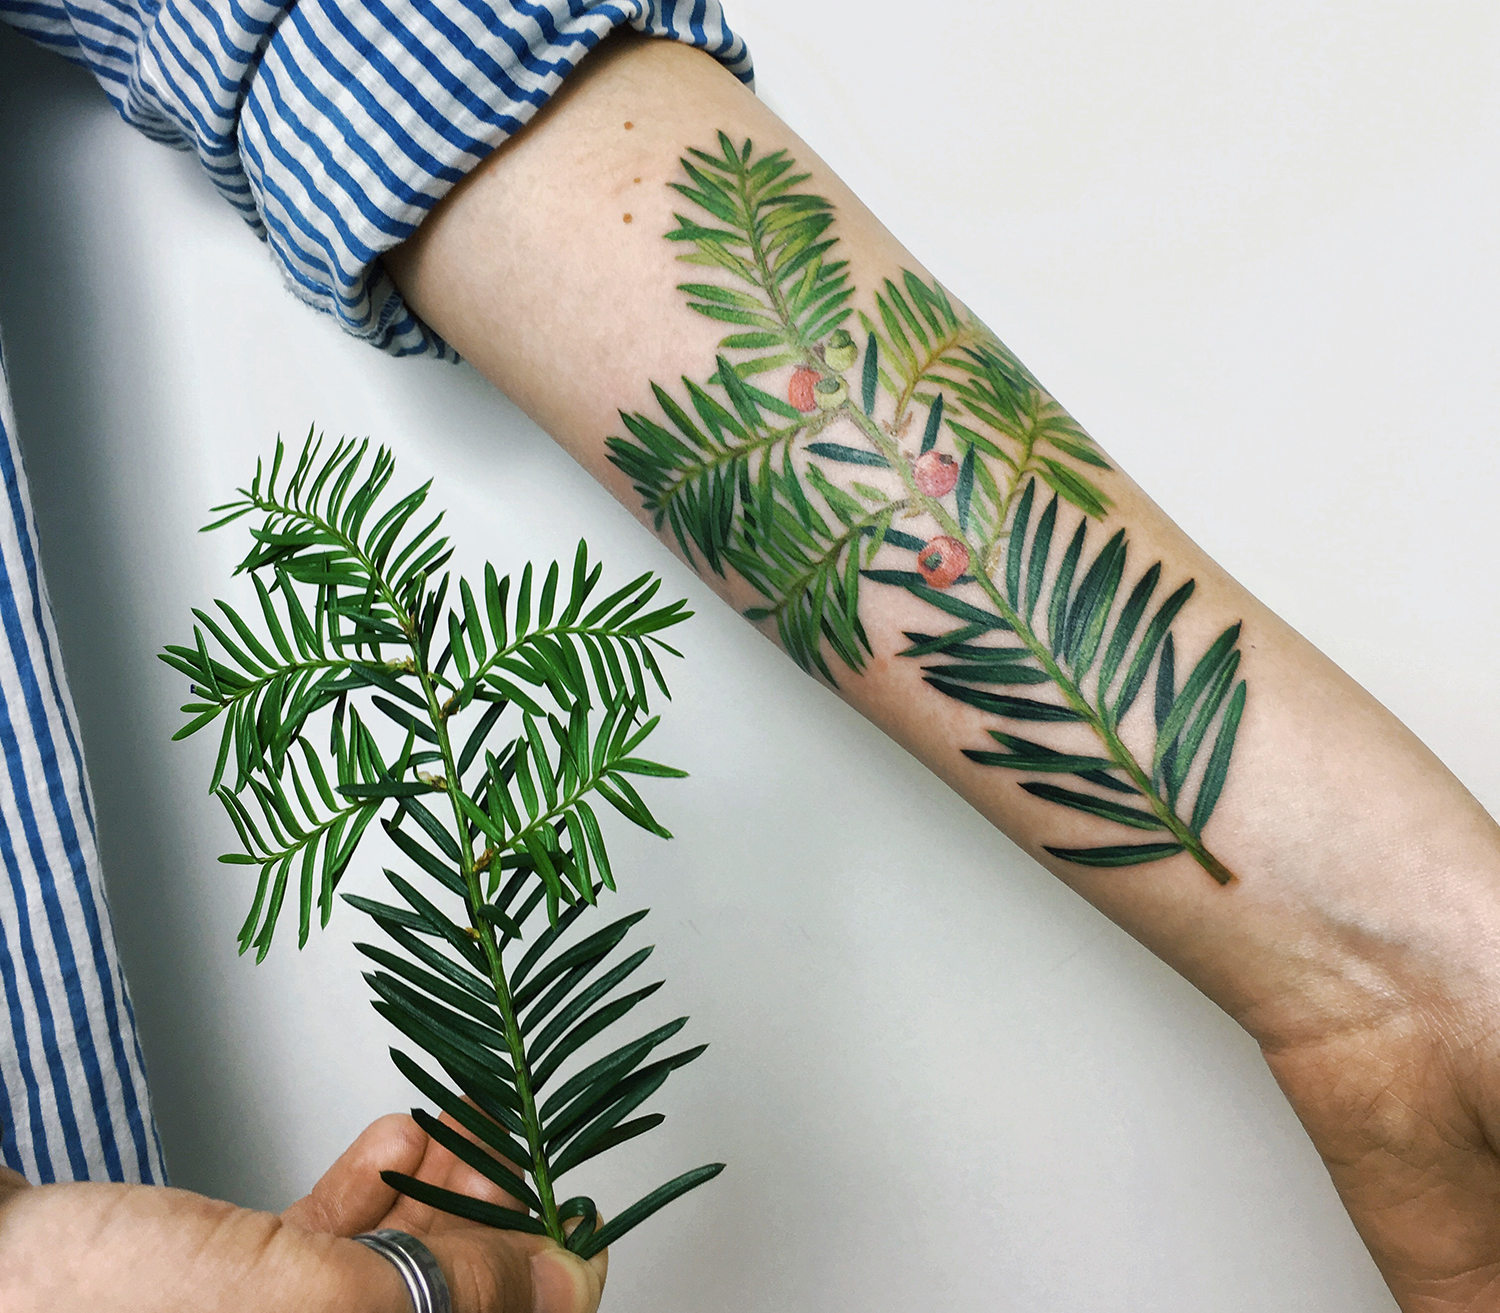 green plants on arm, tattoo